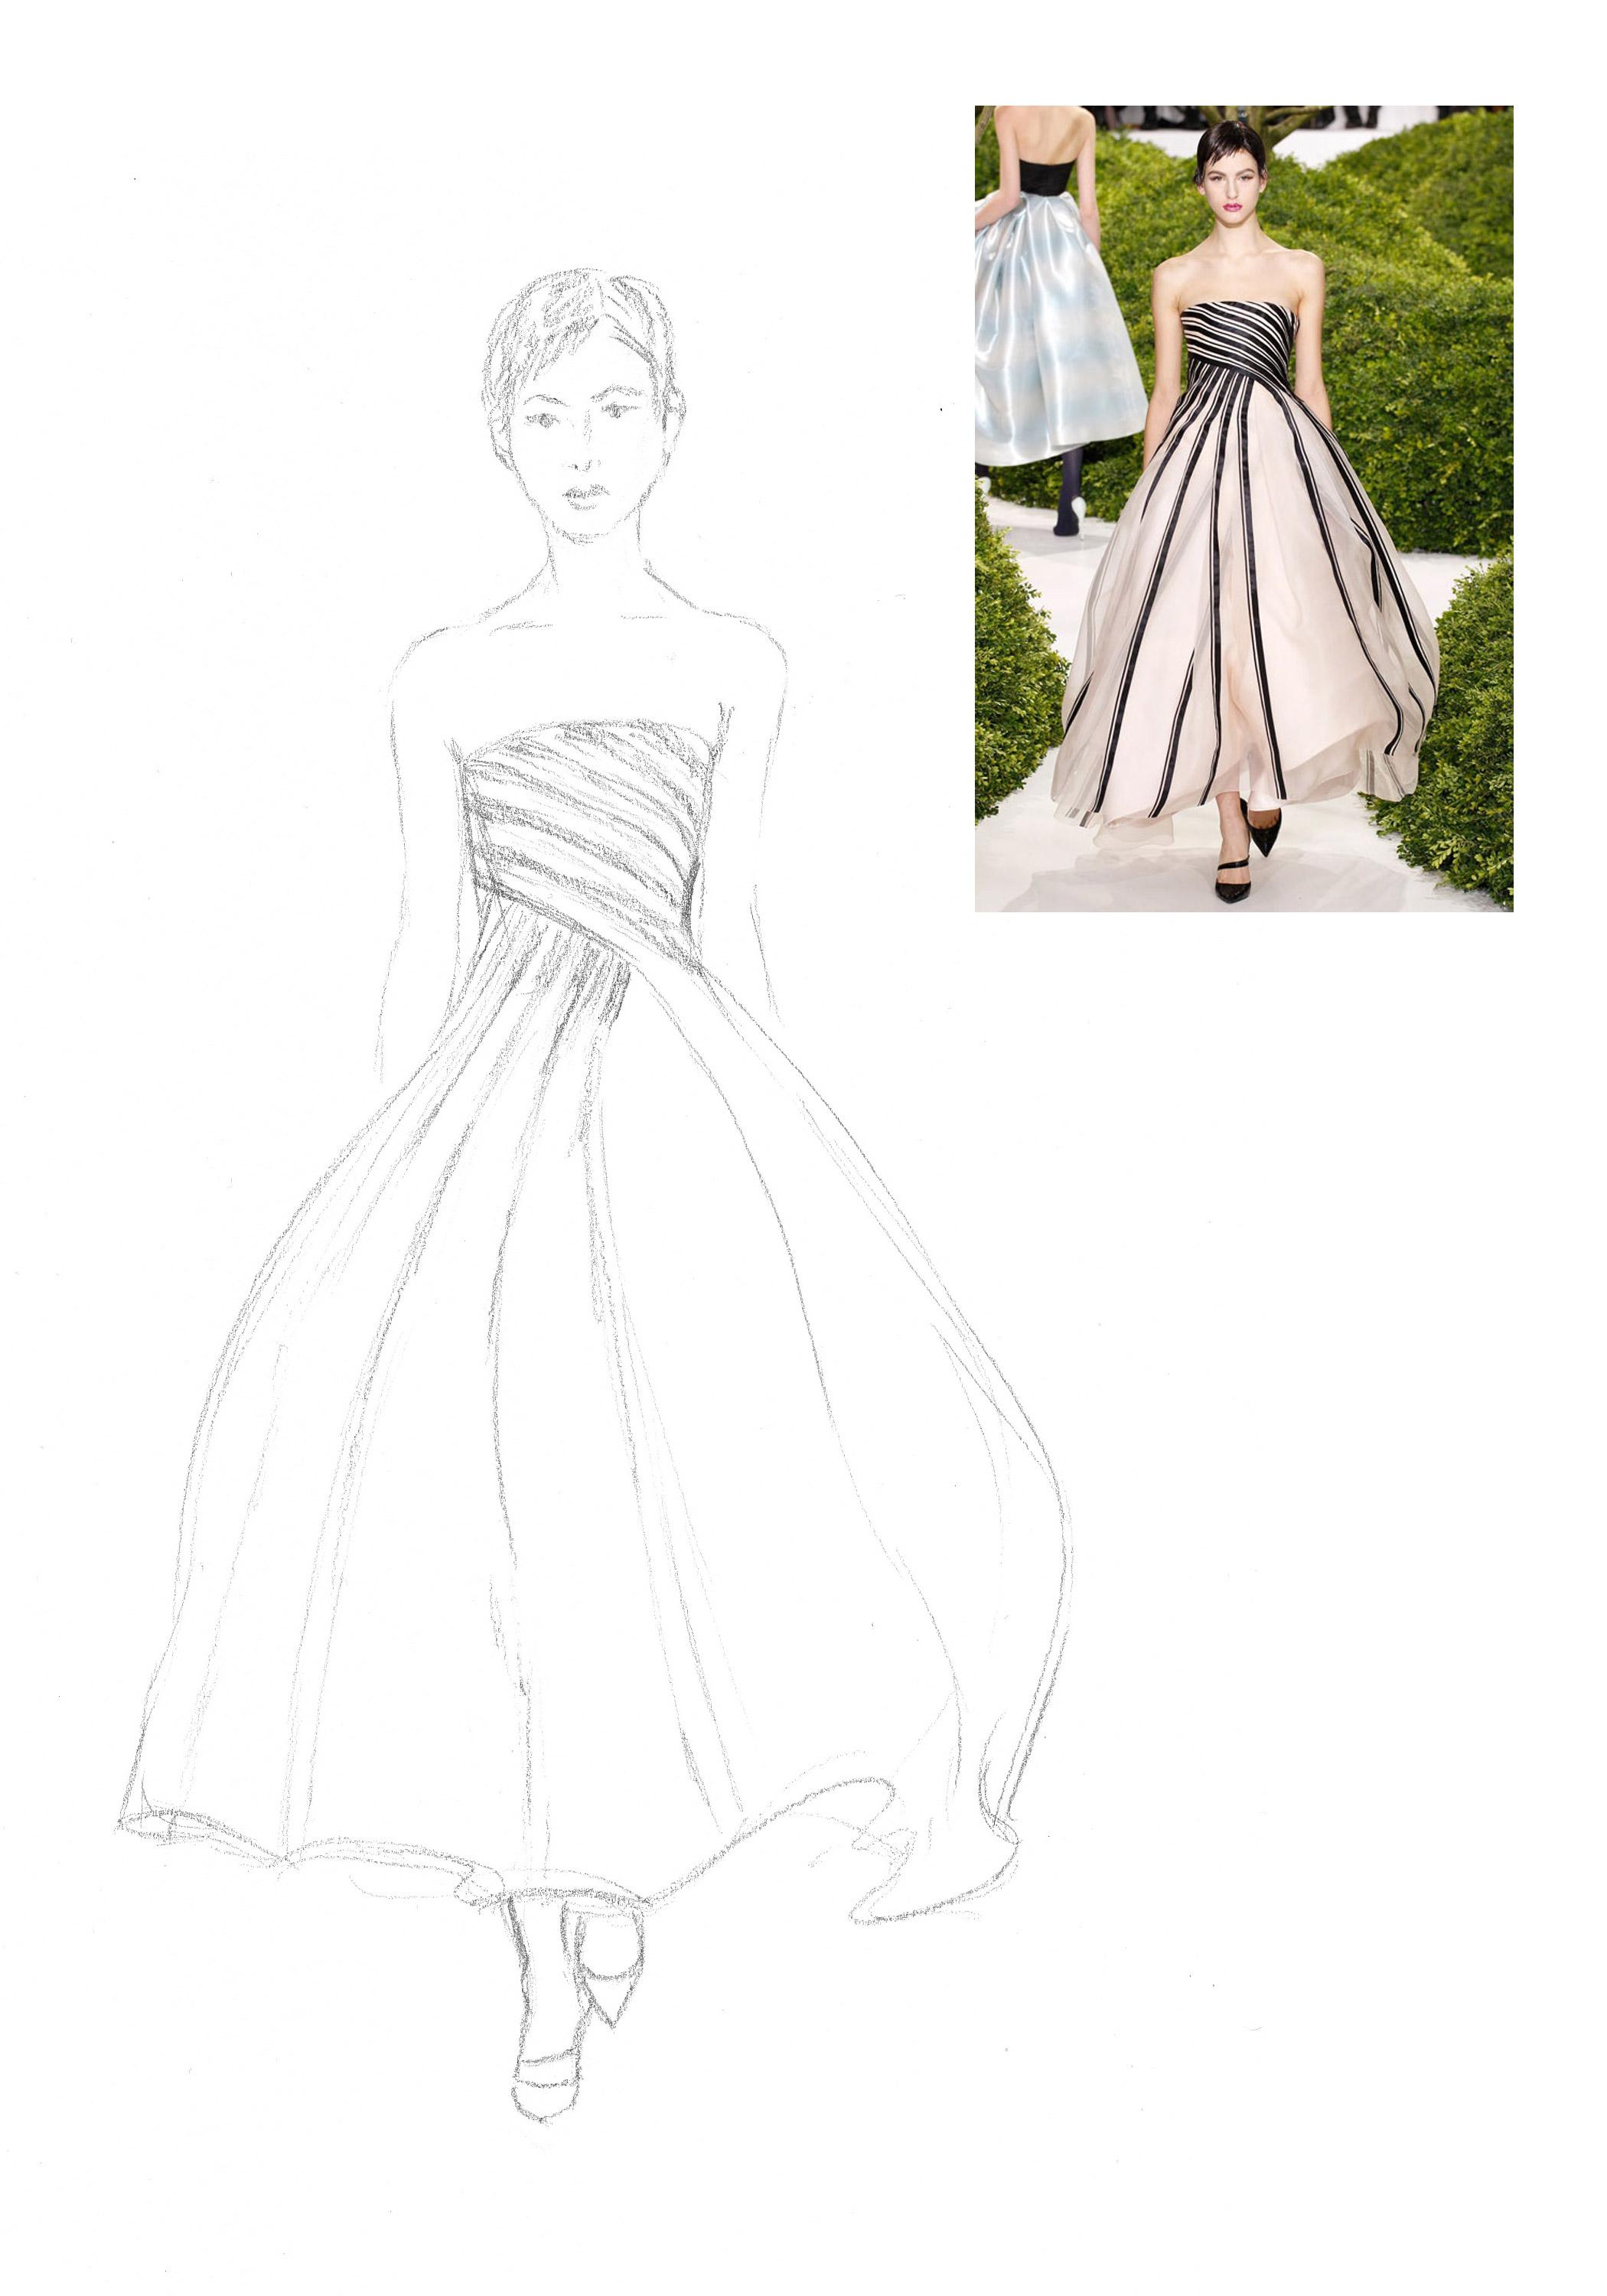 SS14 Inspiration - image 16 - student project